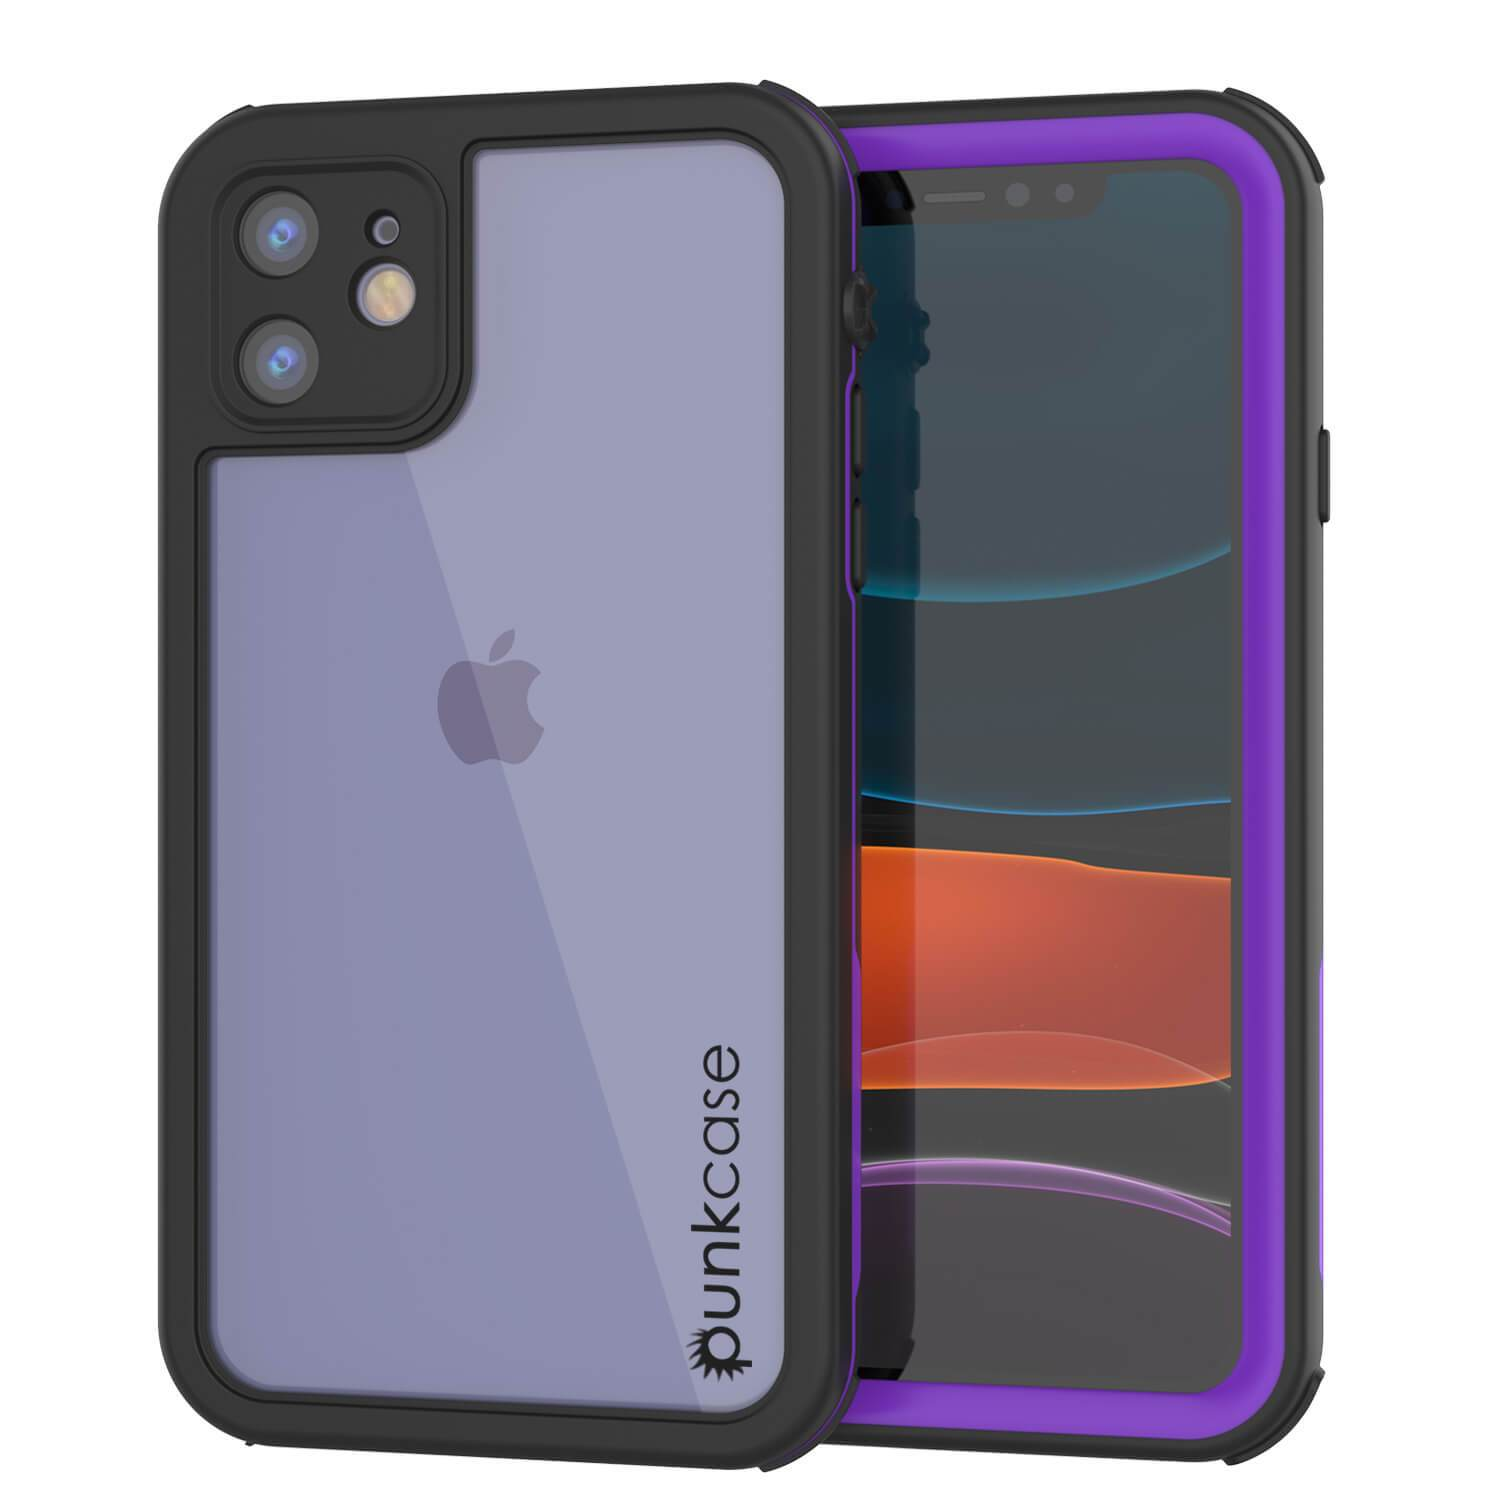 iPhone 7+ Plus Waterproof IP68 Case, Punkcase [Purple] [Rapture Series]  W/Built in Screen Protector